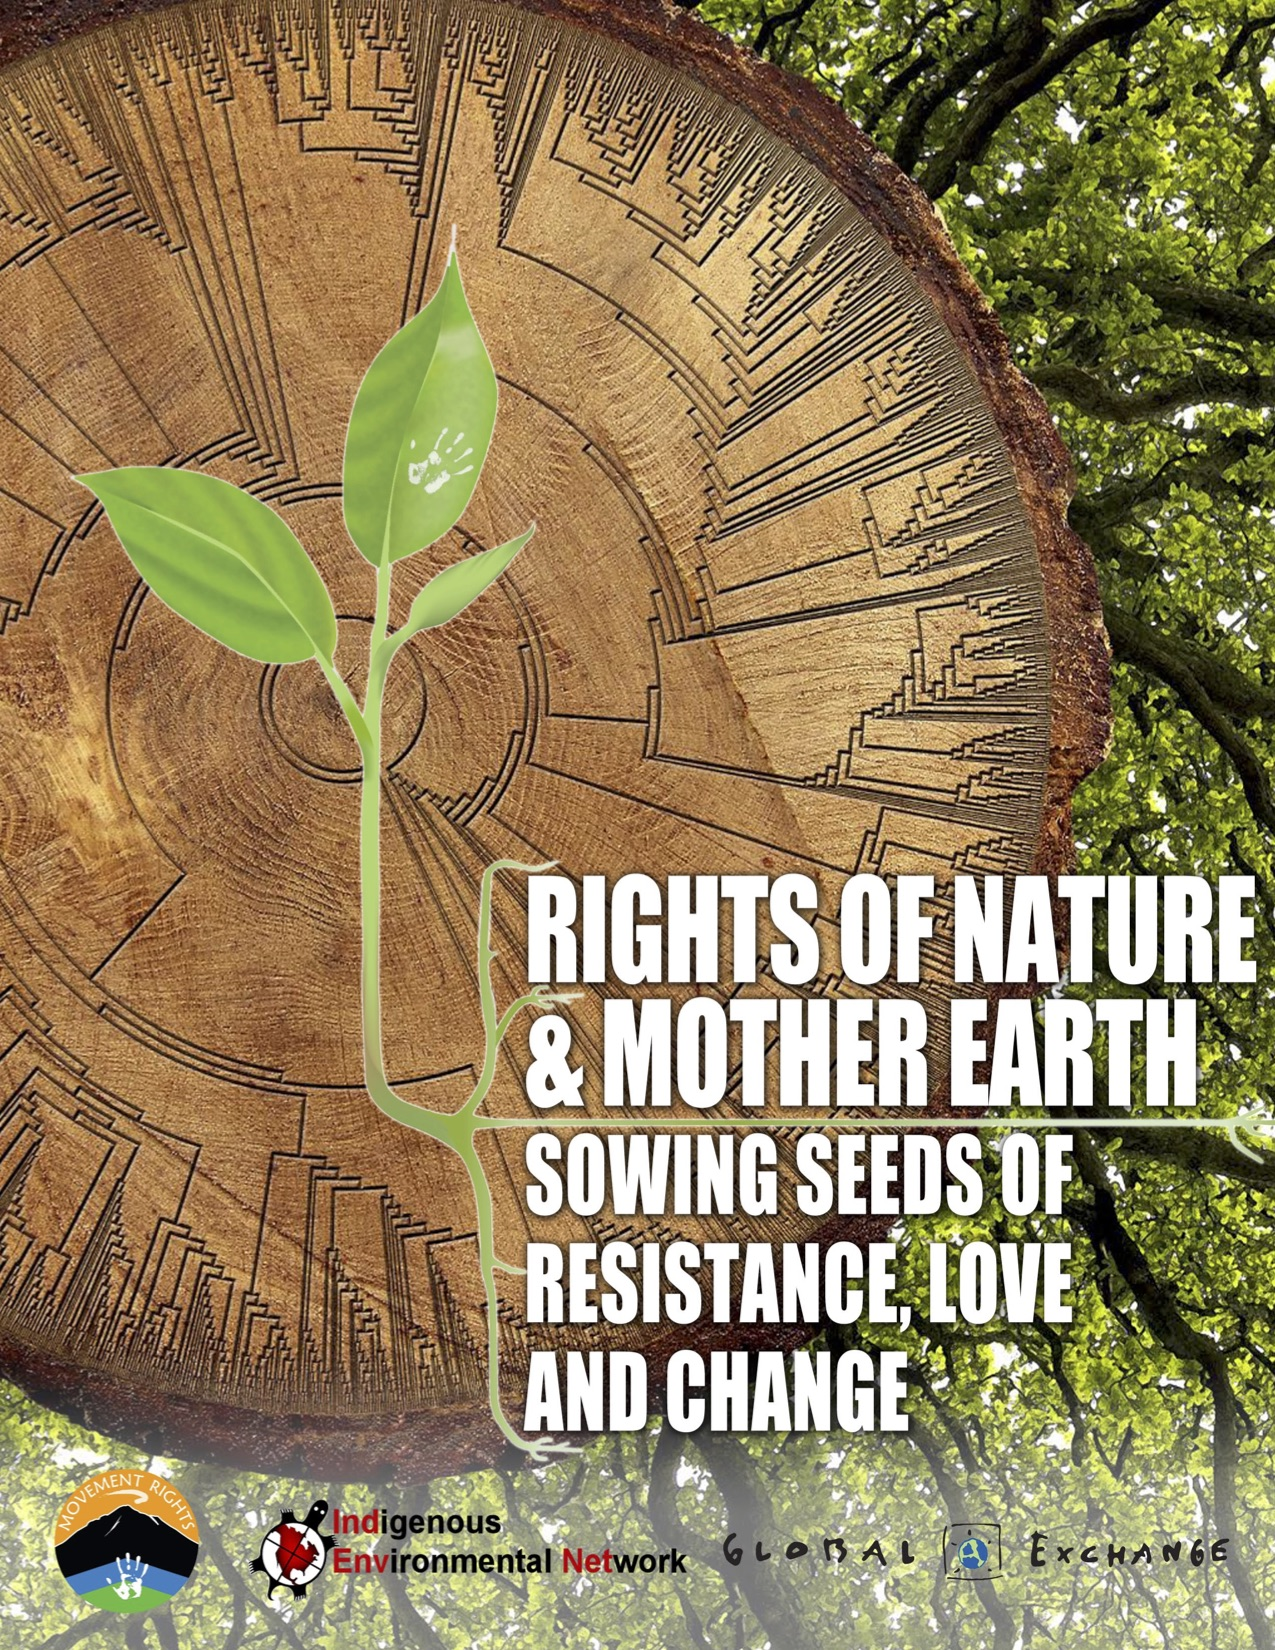 Rights of Nature report released for Paris Climate Talks